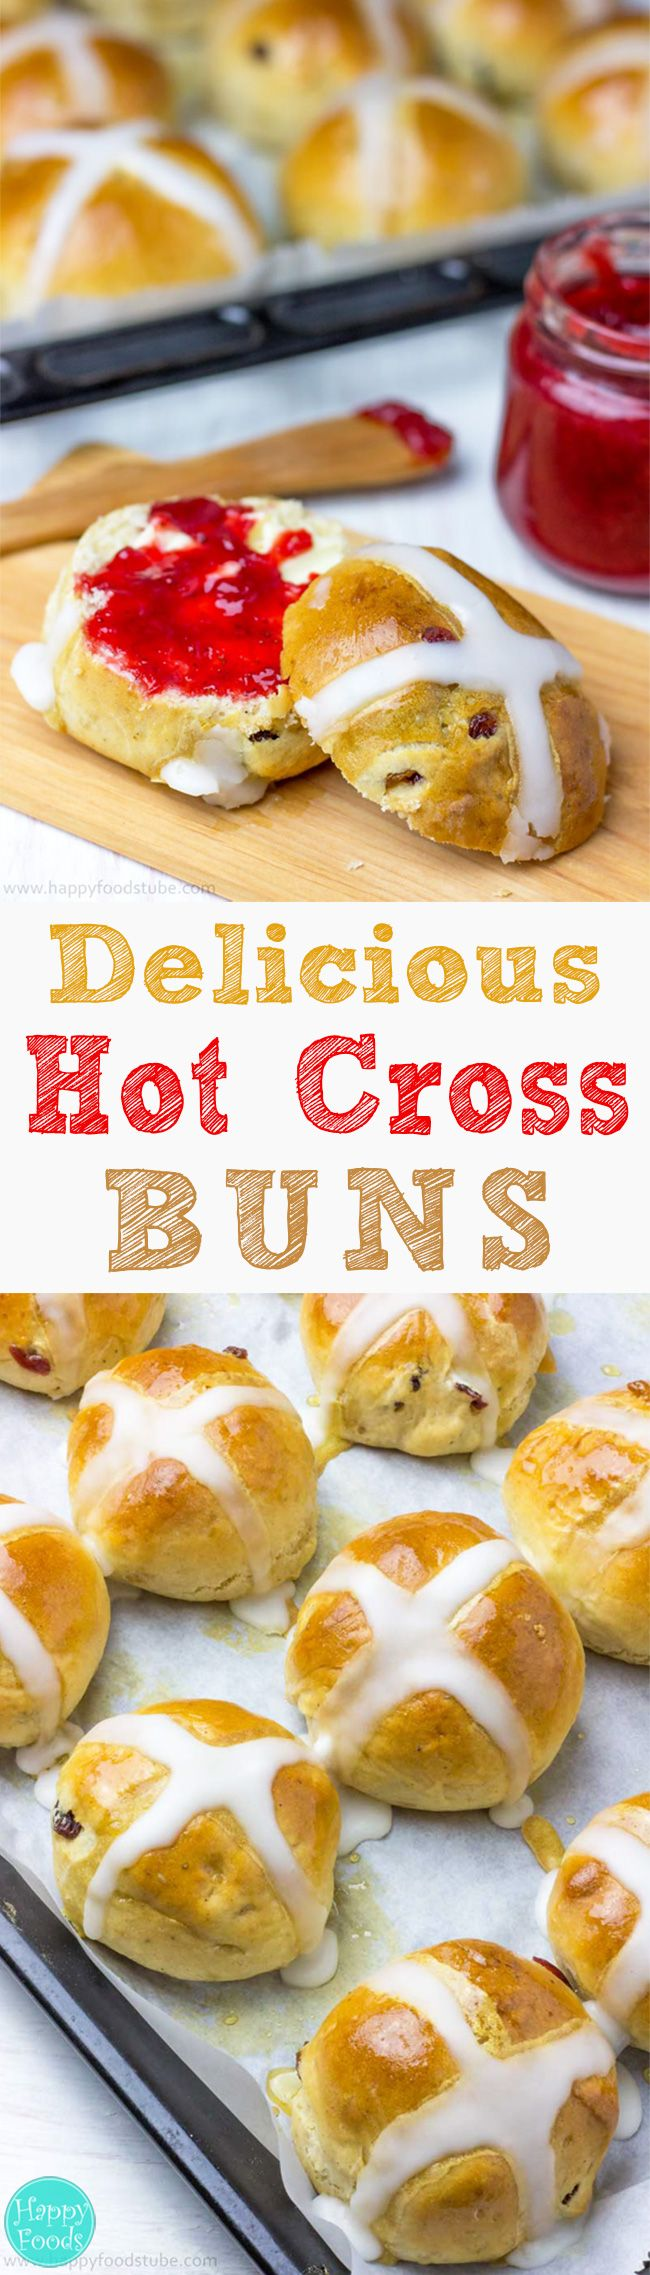 Delicious Hot Cross Buns Recipe - These spiced sweet buns with sticky glaze on top and dried fruit inside are simply irresistible! Easter. Good Friday | happyfoodstube.com